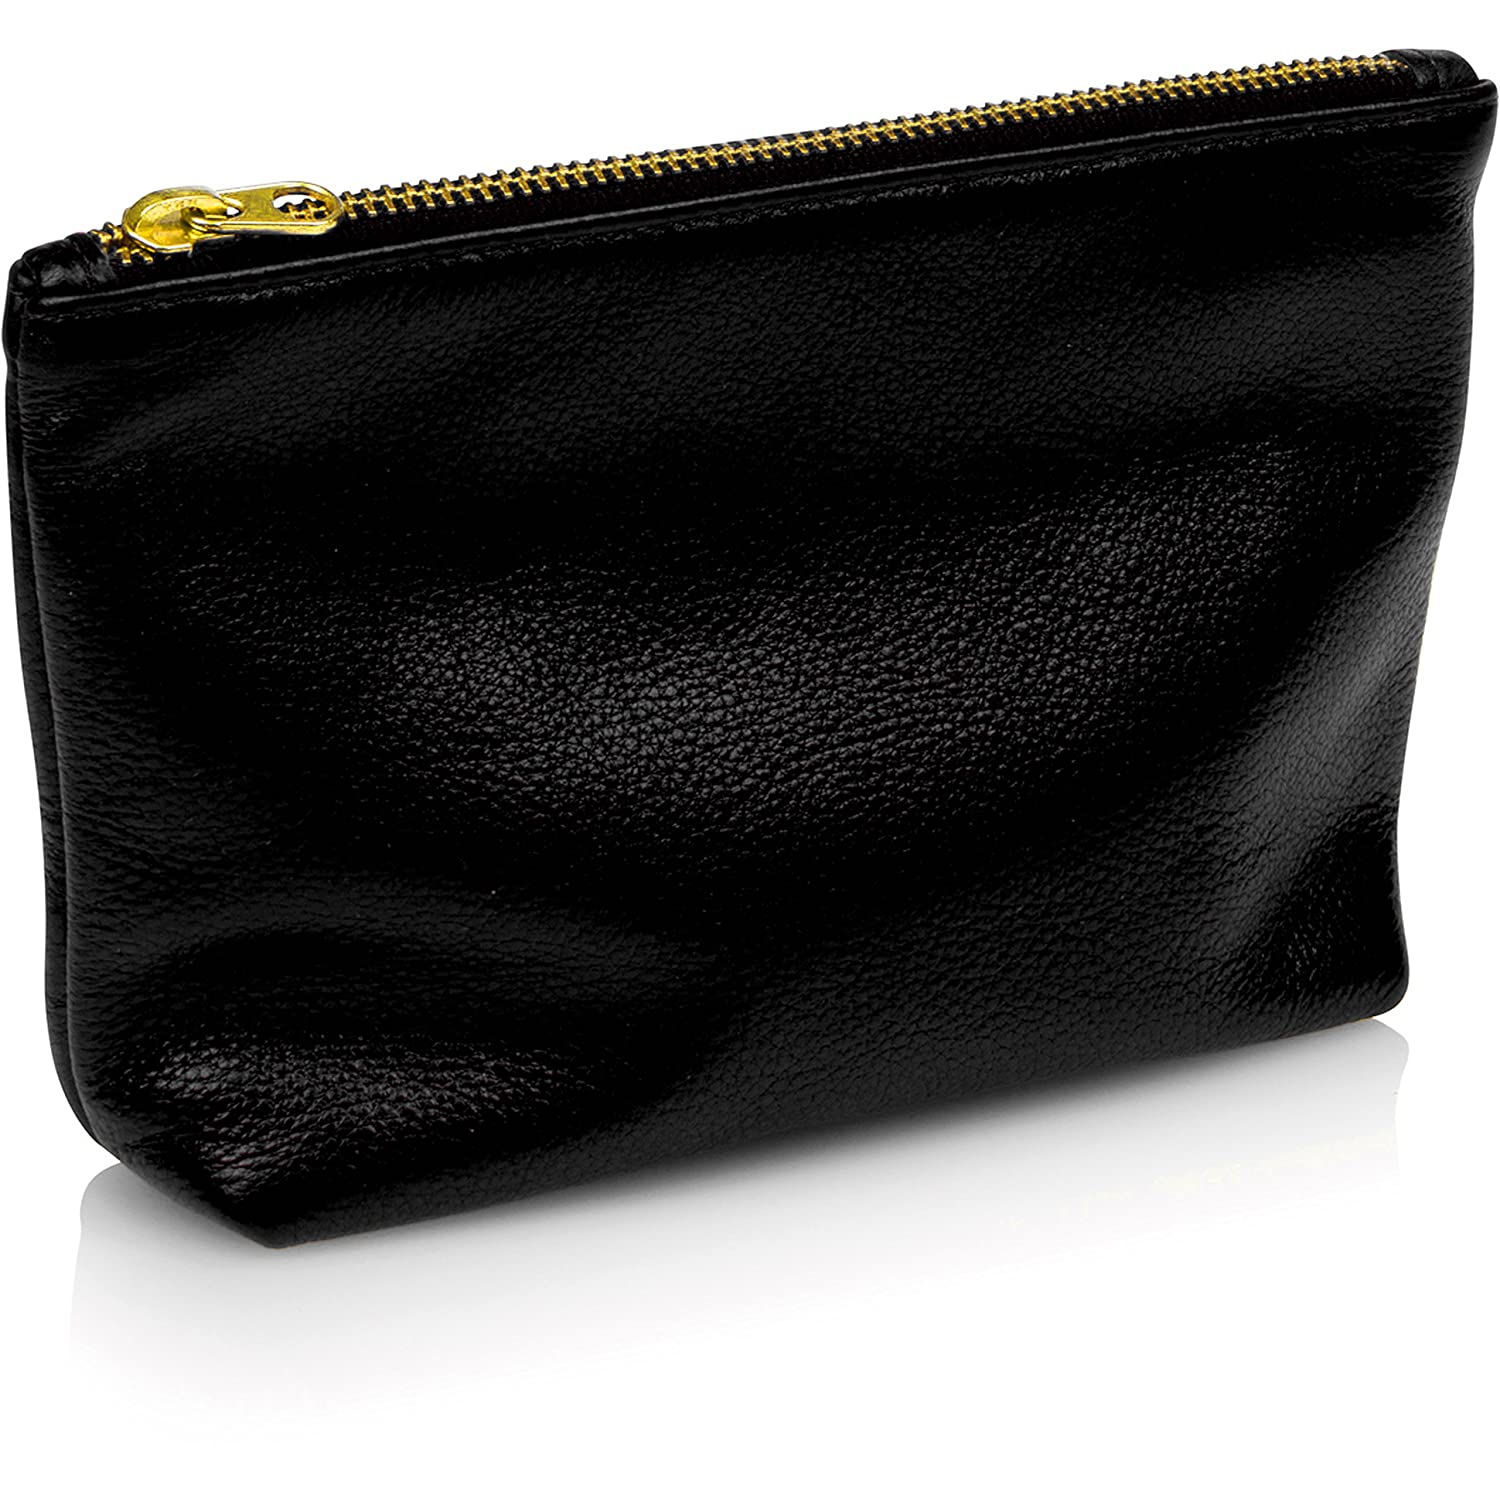 Leah Lerner Women Small Leather Clutch Cosmetic Pouch